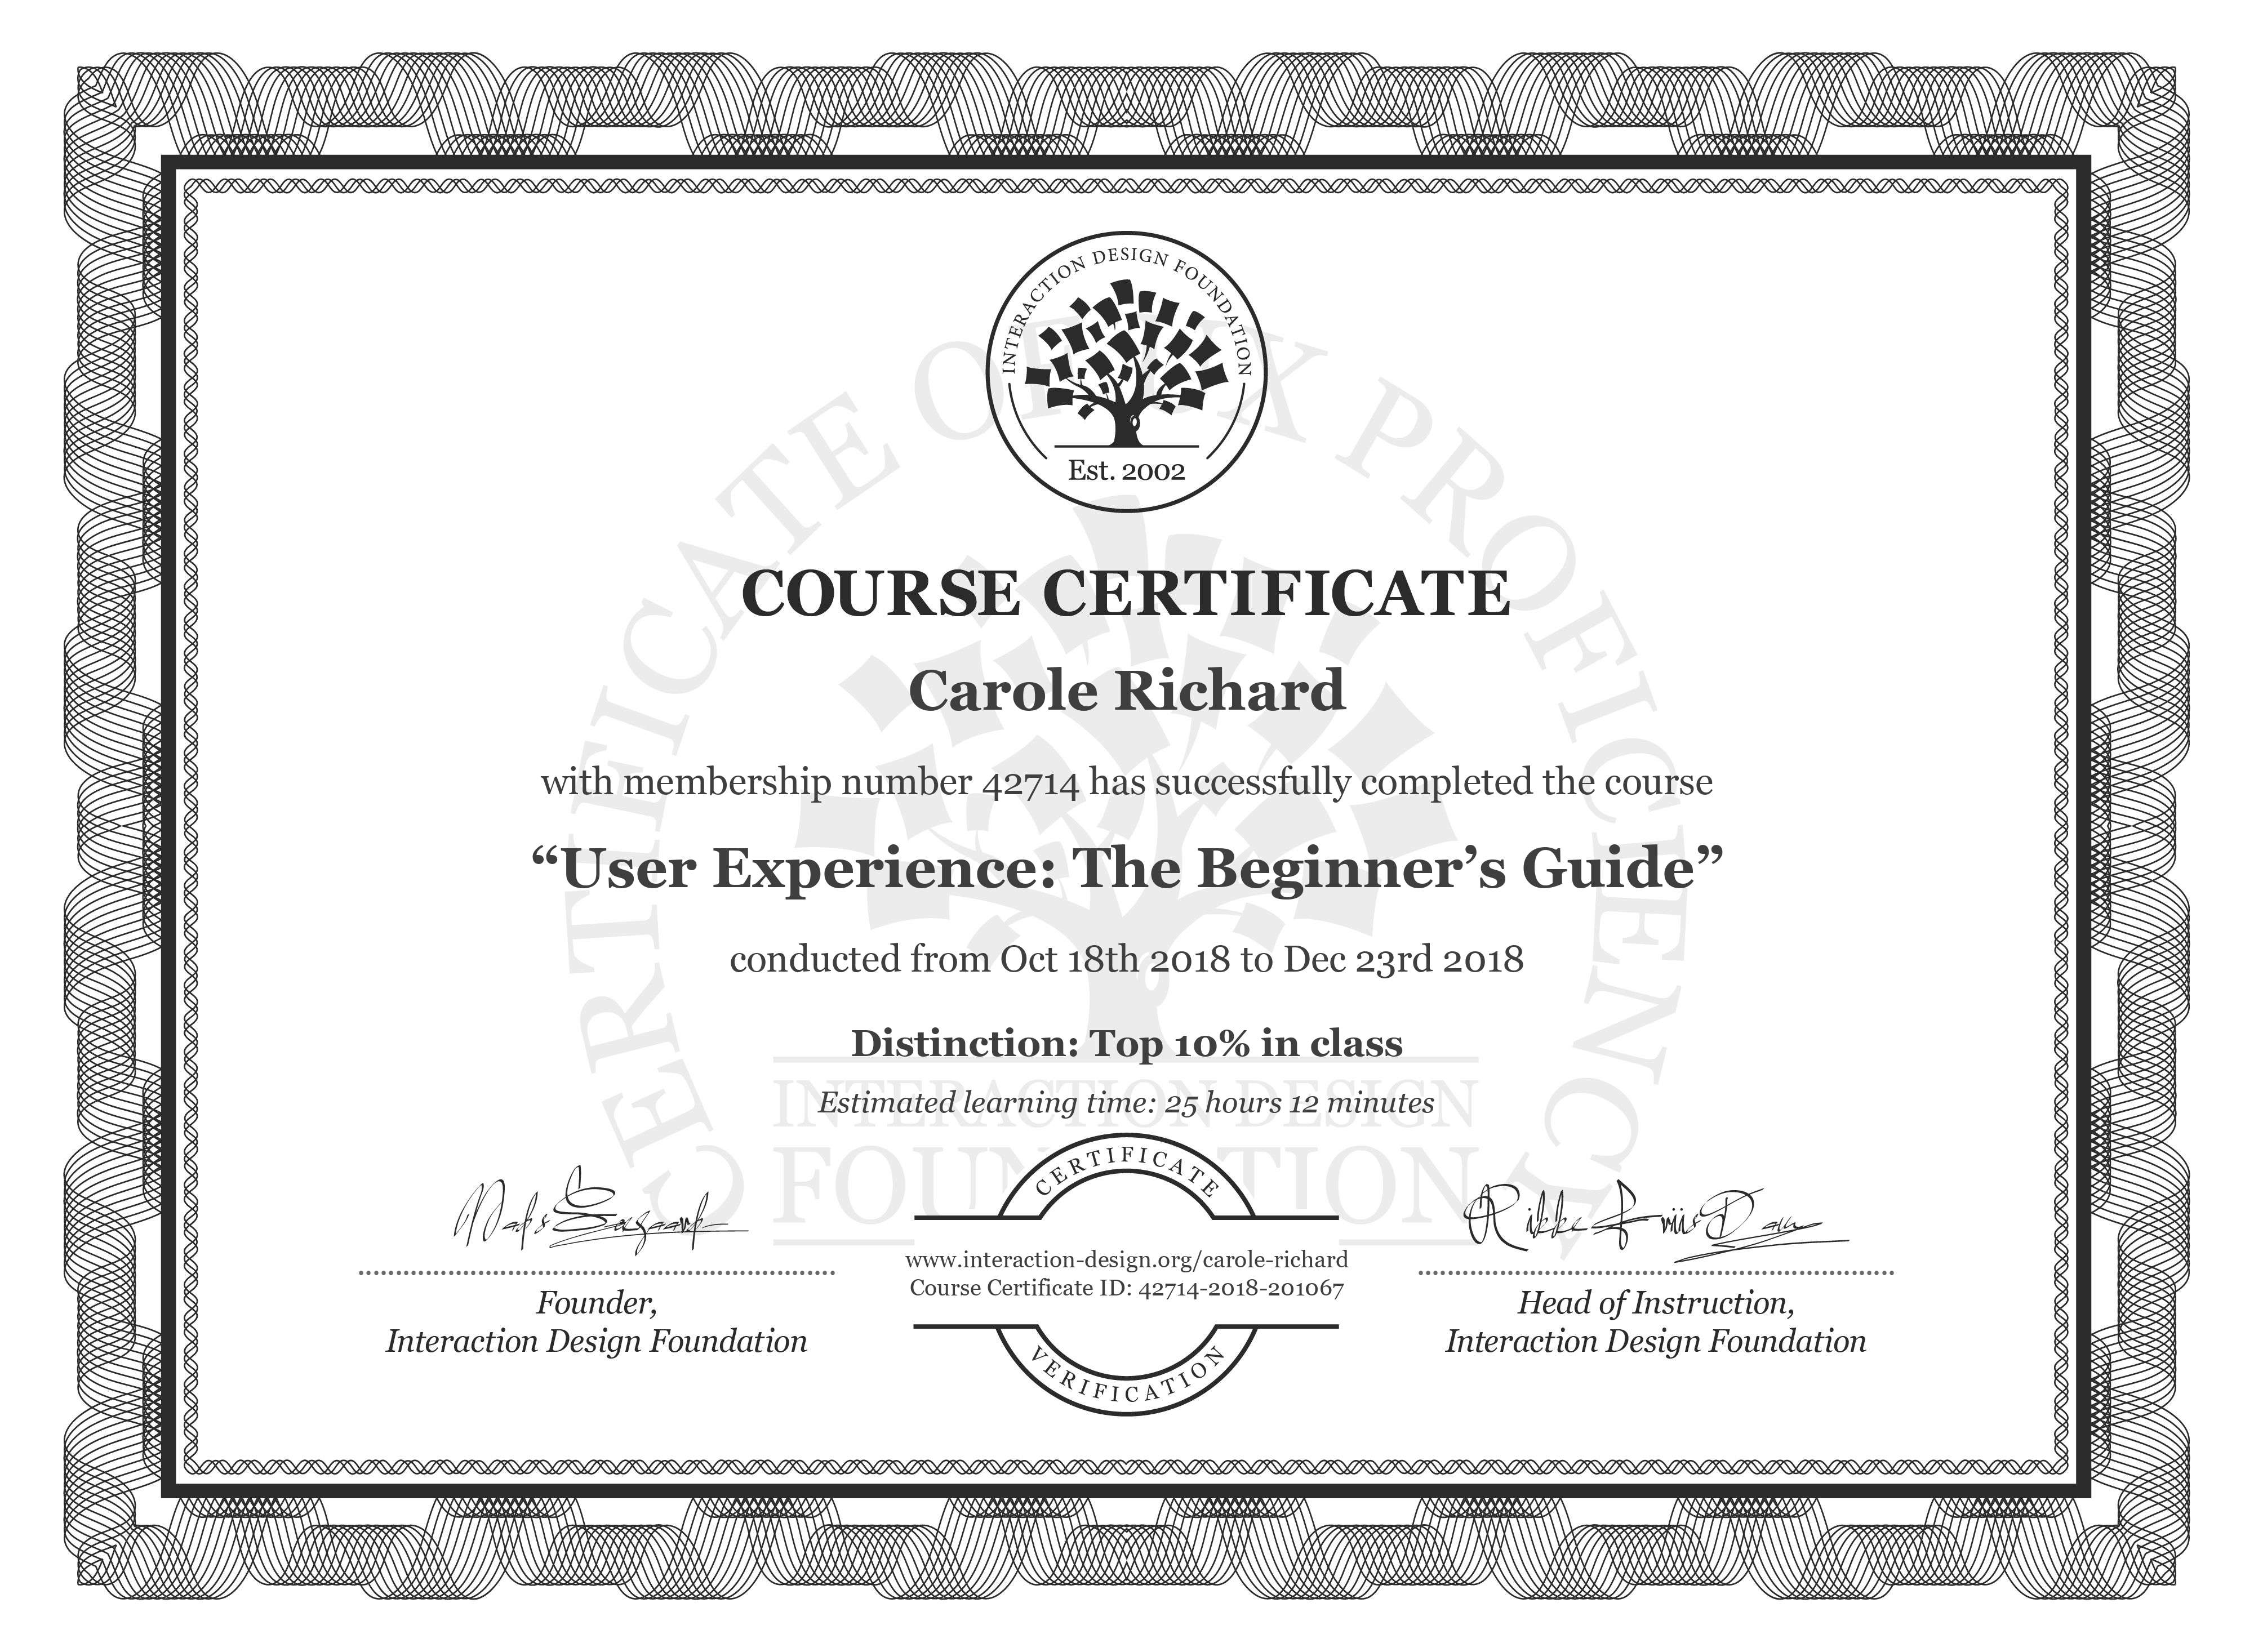 Carole Richard's Course Certificate: Become a UX Designer from Scratch